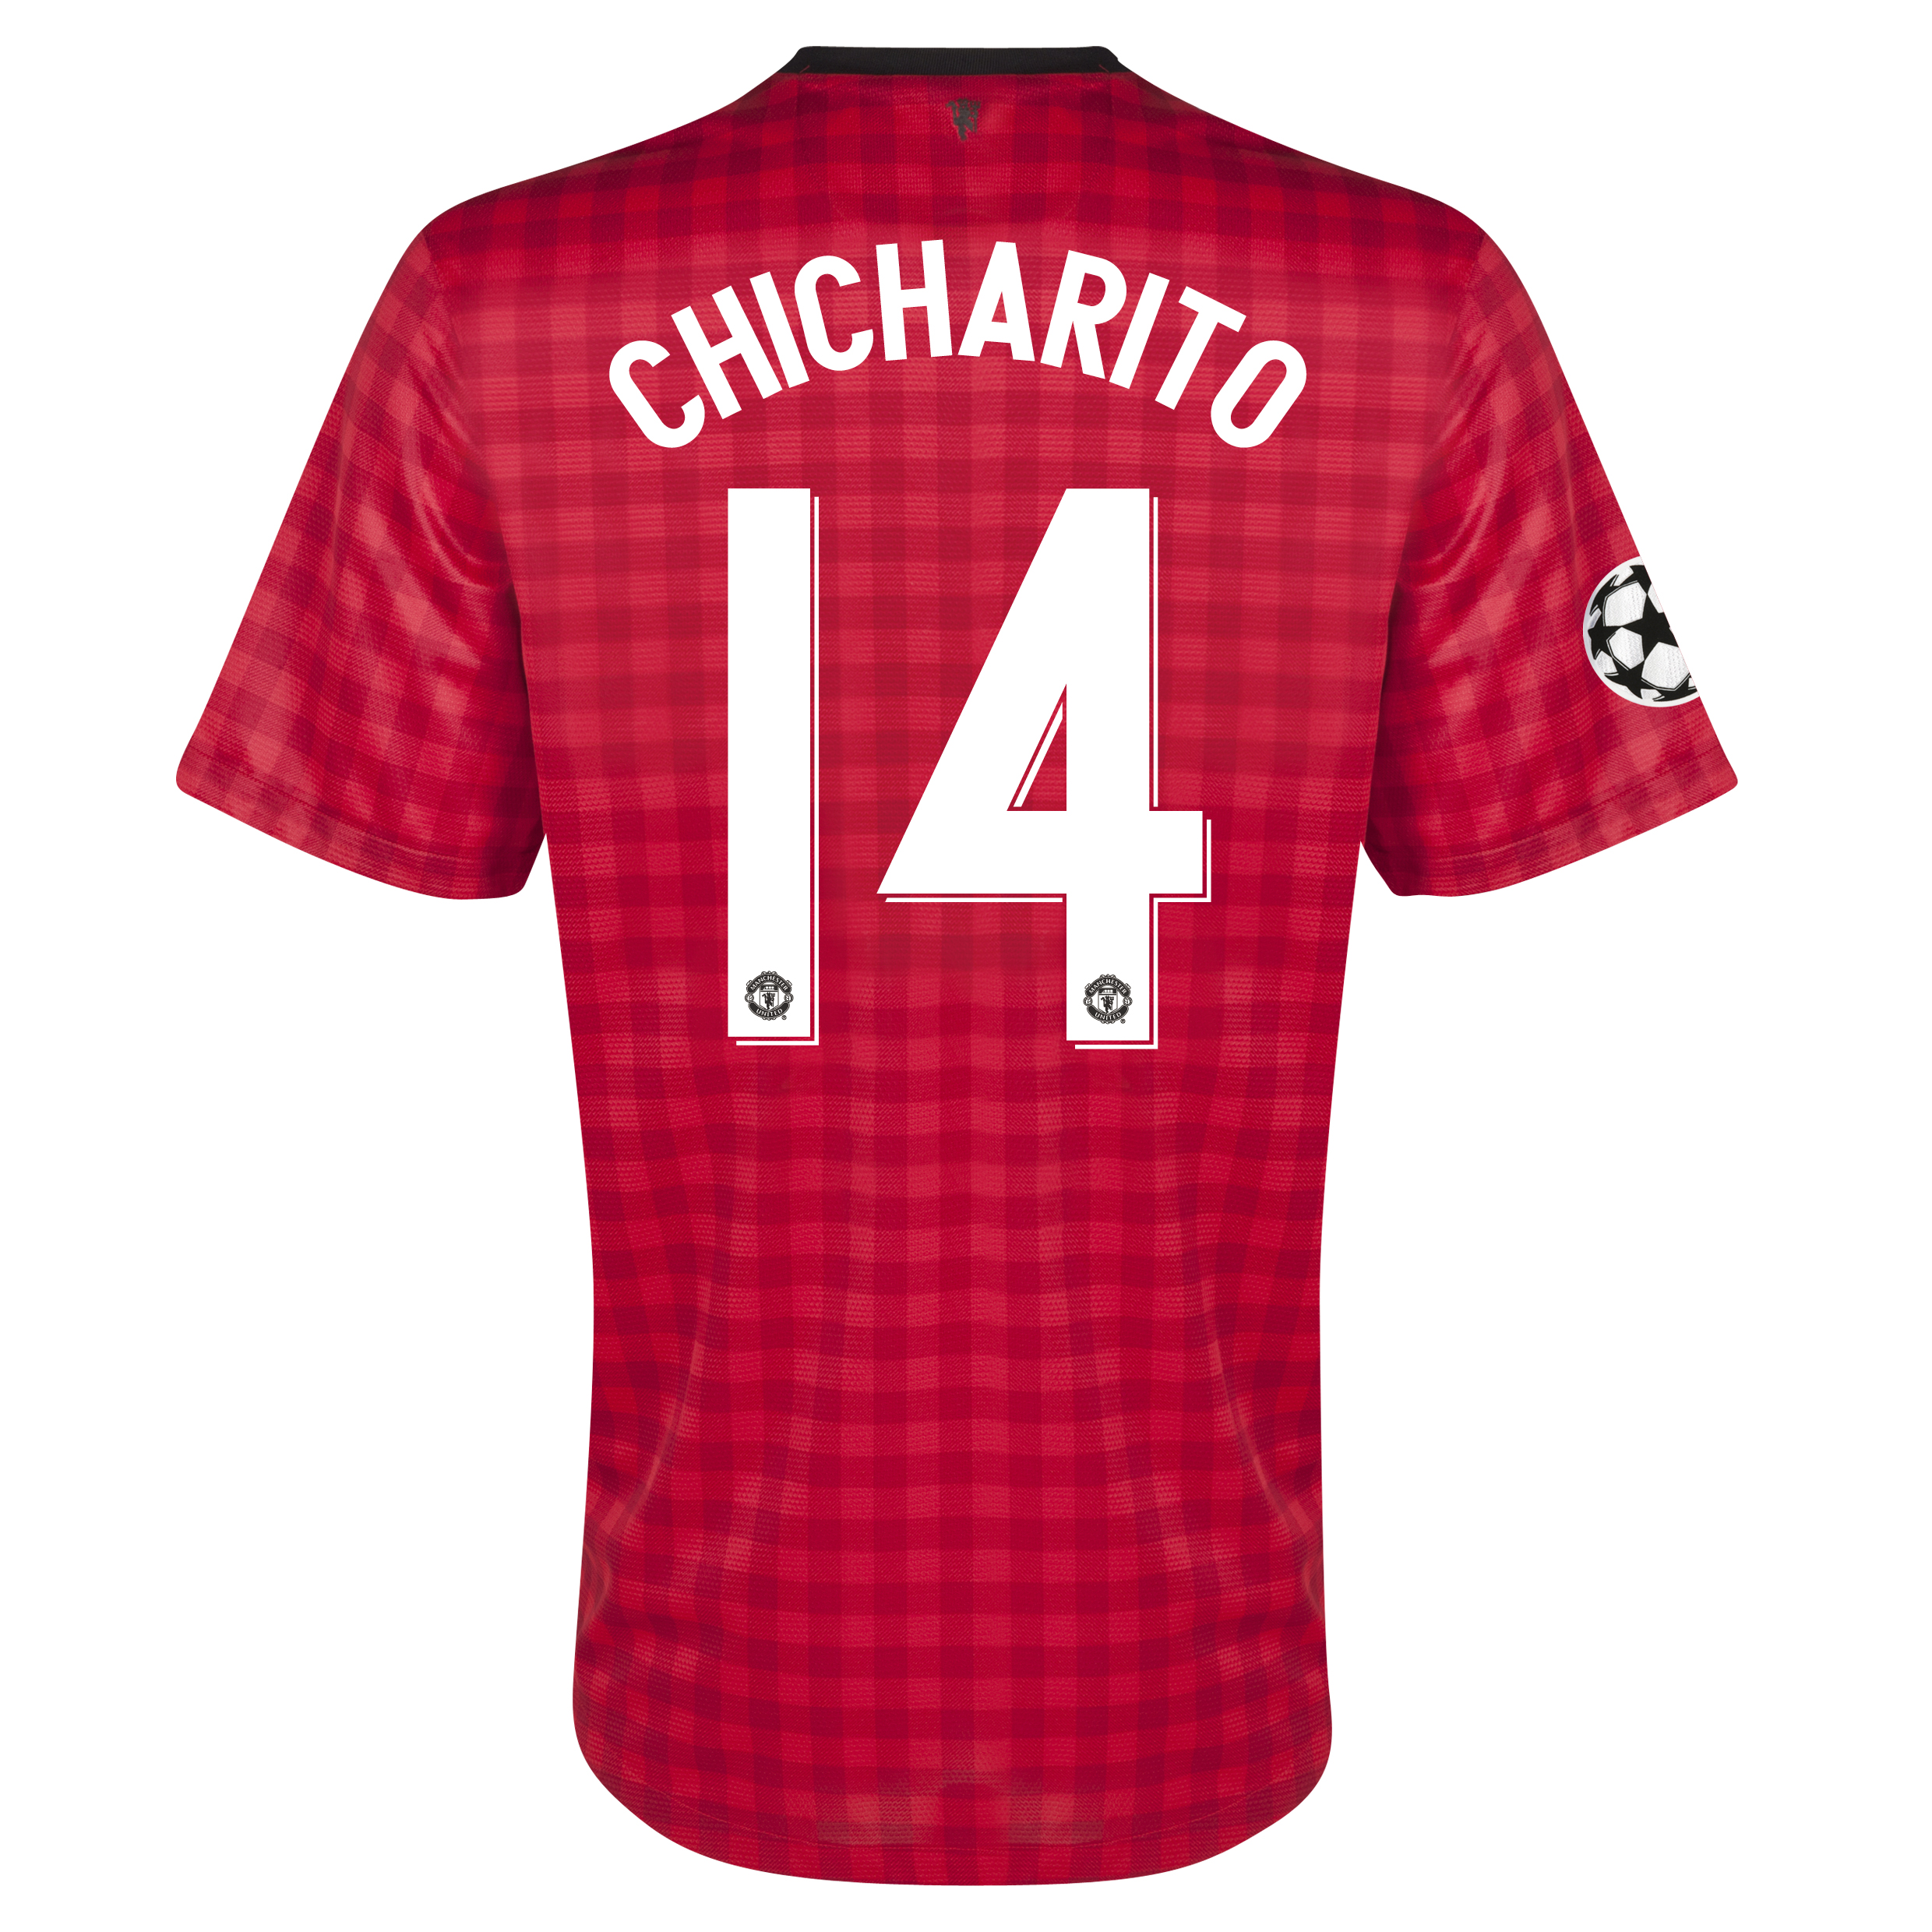 Manchester United UEFA Champions League Home Shirt 2012/13 - Kids with Chicharito 14 printing